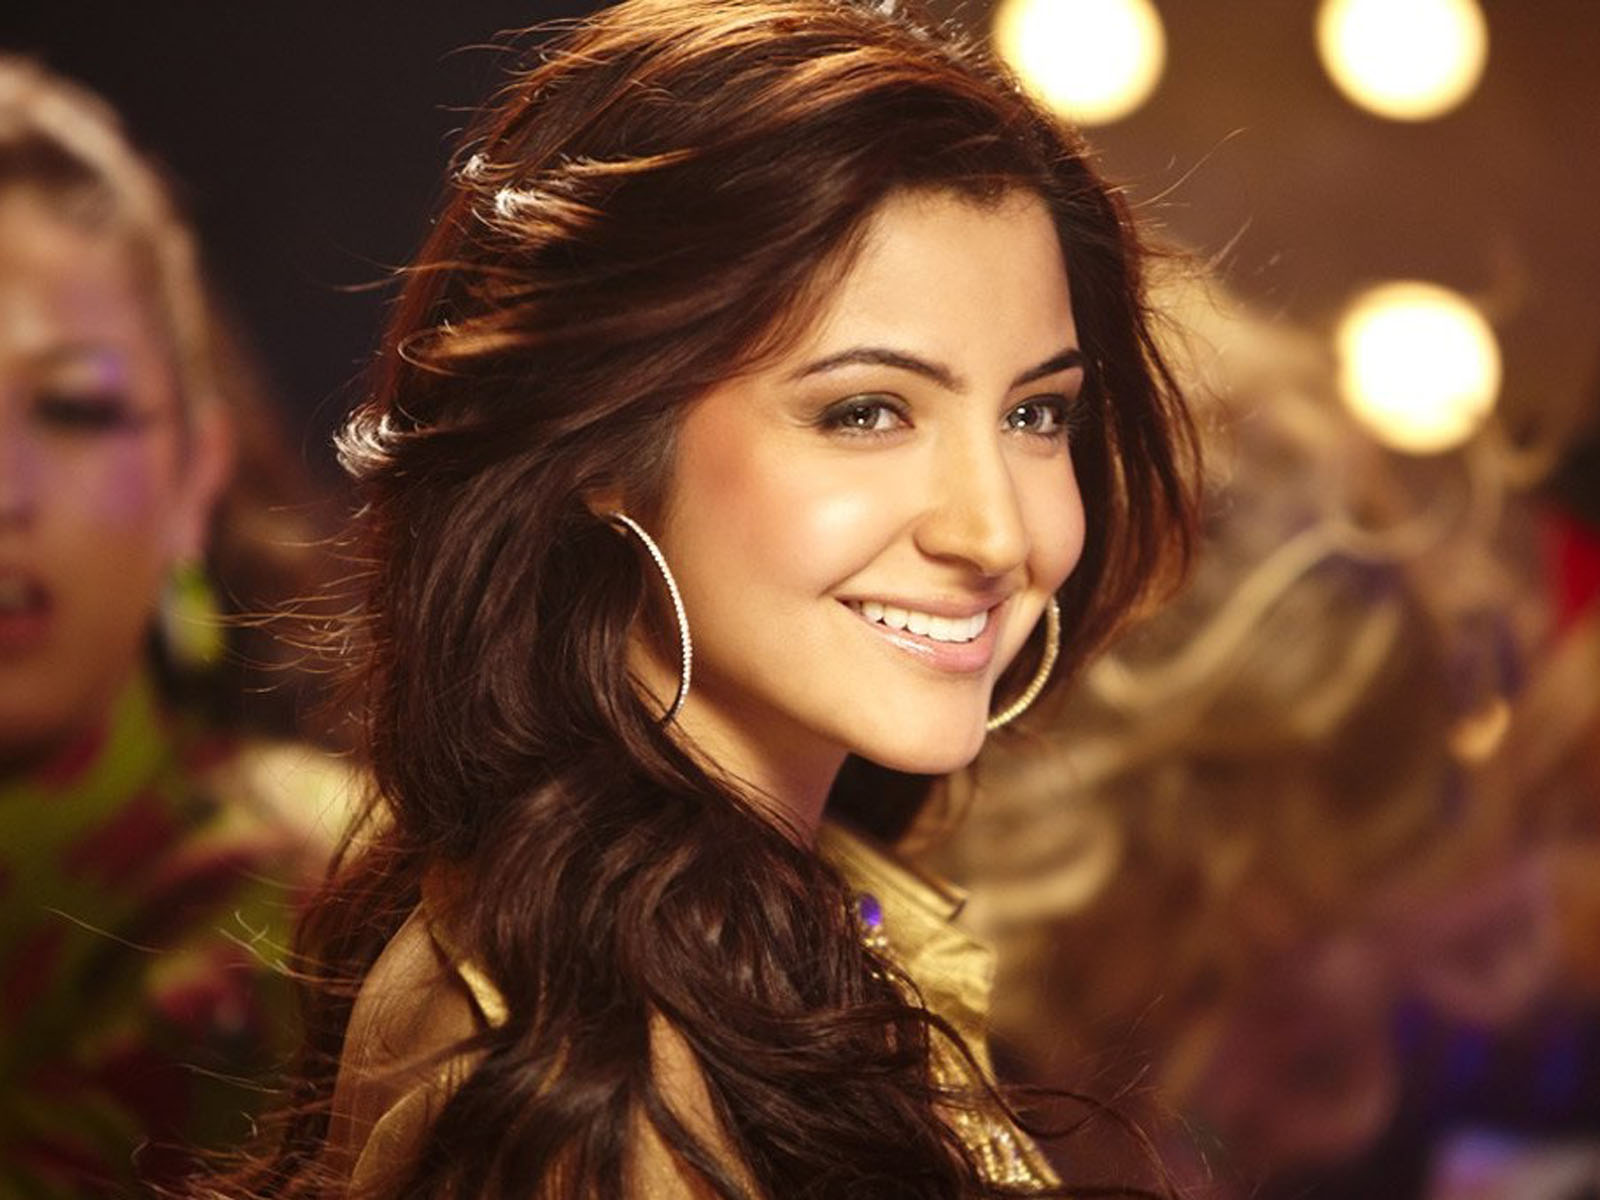 50+ anushka sharma hot hd images & 1080p wallpapers - hd images